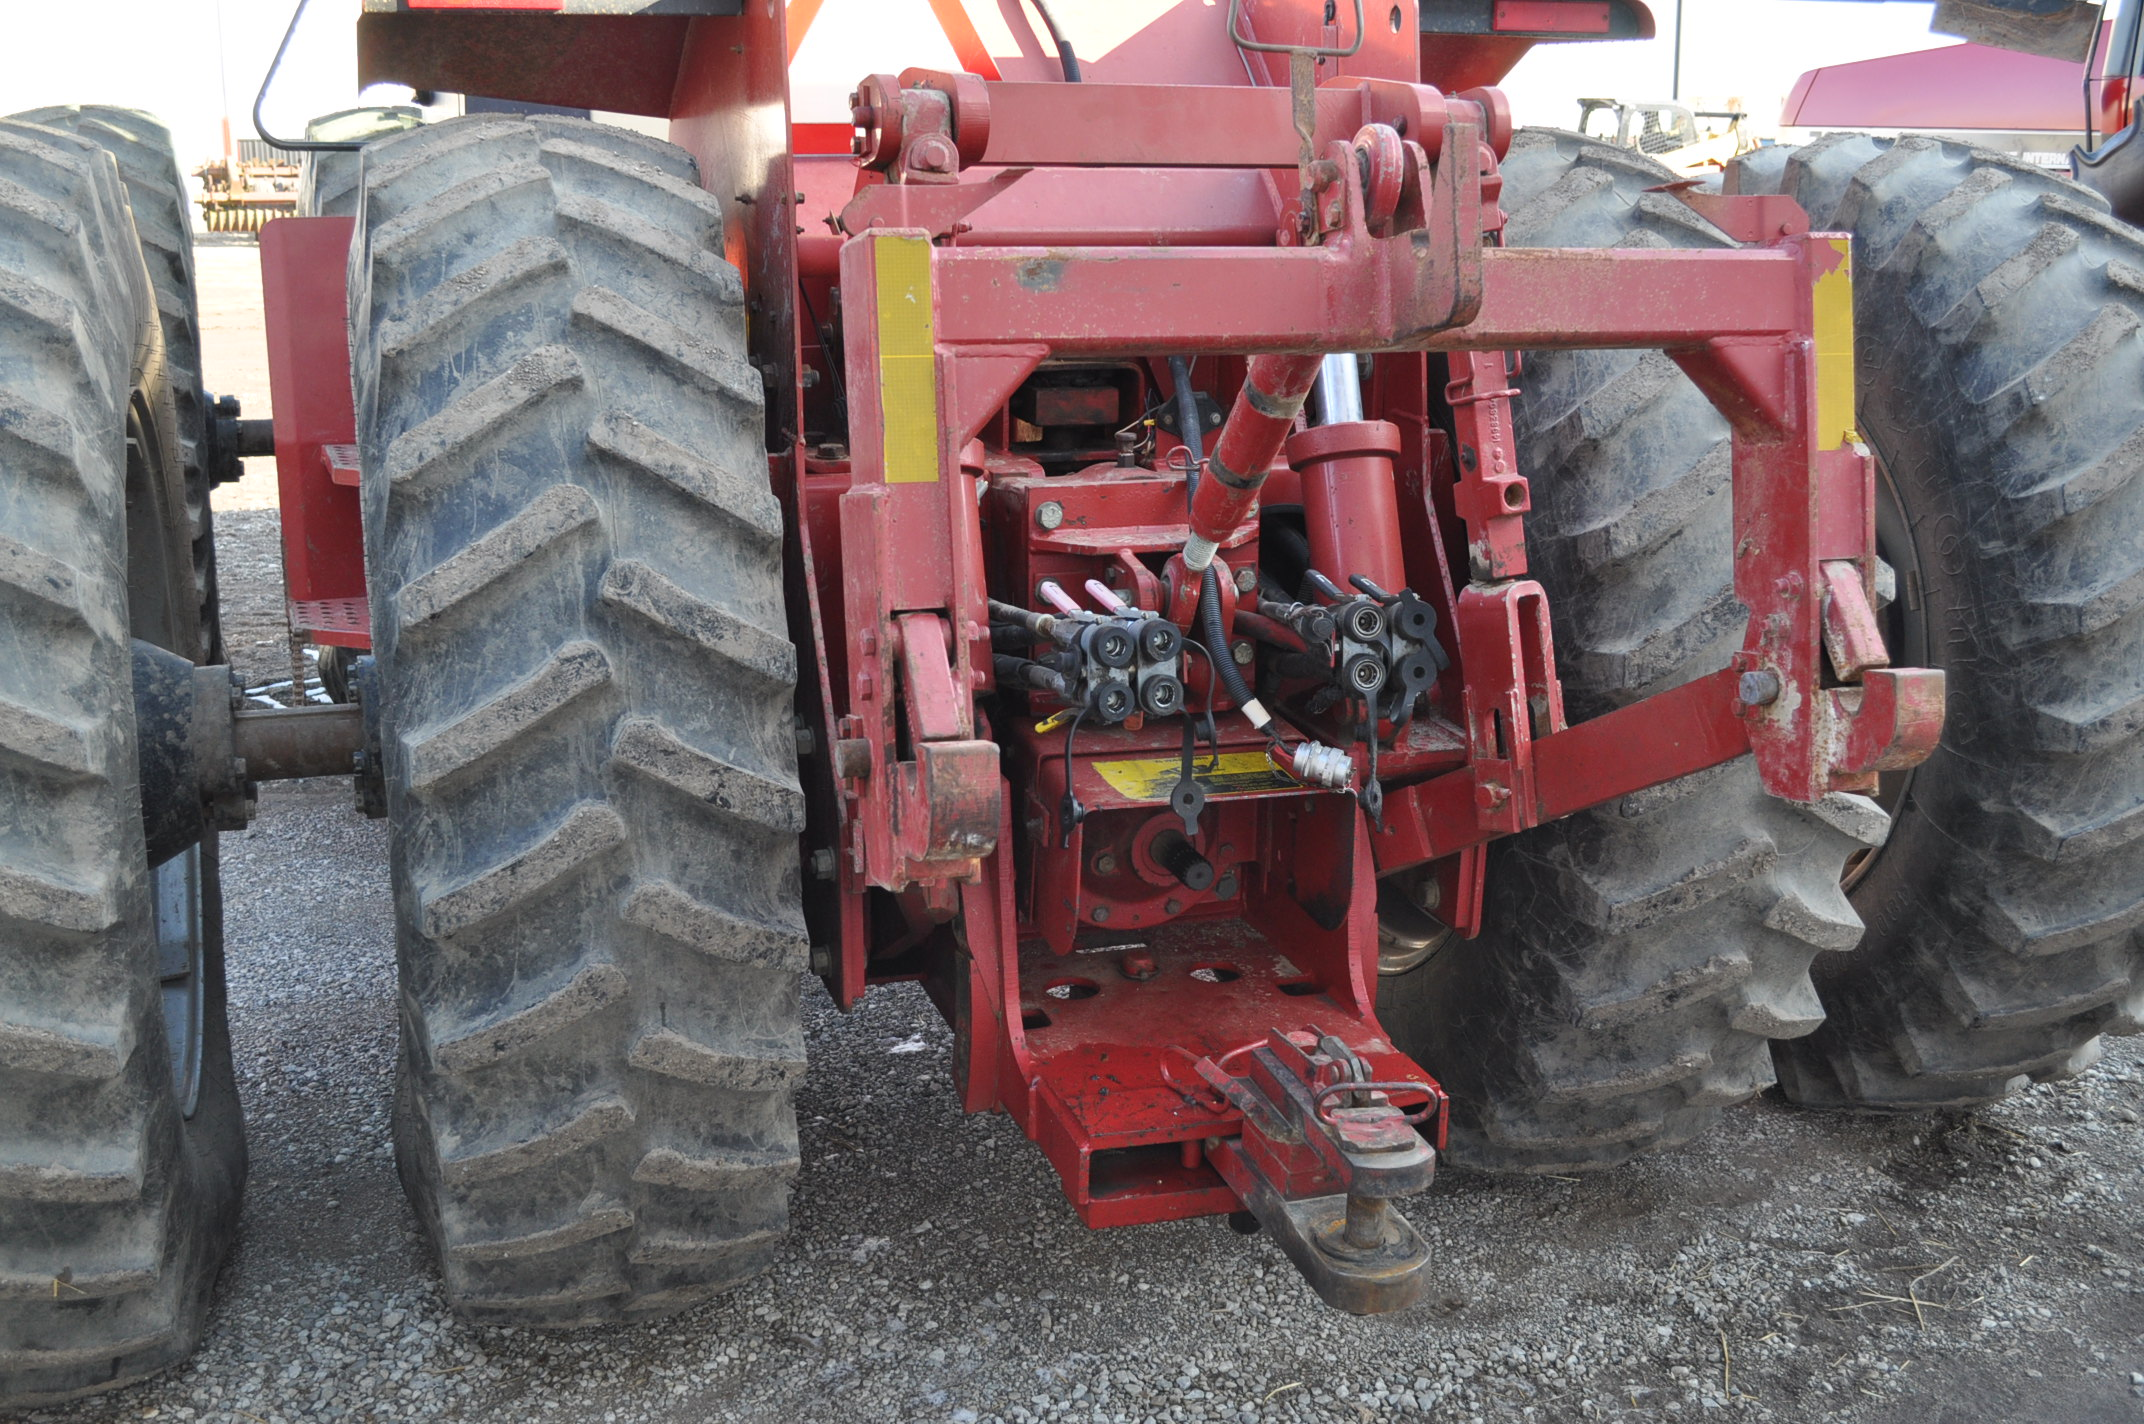 Case IH 9230 4WD tractor, 18.4-38 duals, power shift, skip shift, 4 hyd remotes, 3pt, quick hitch, - Image 11 of 23